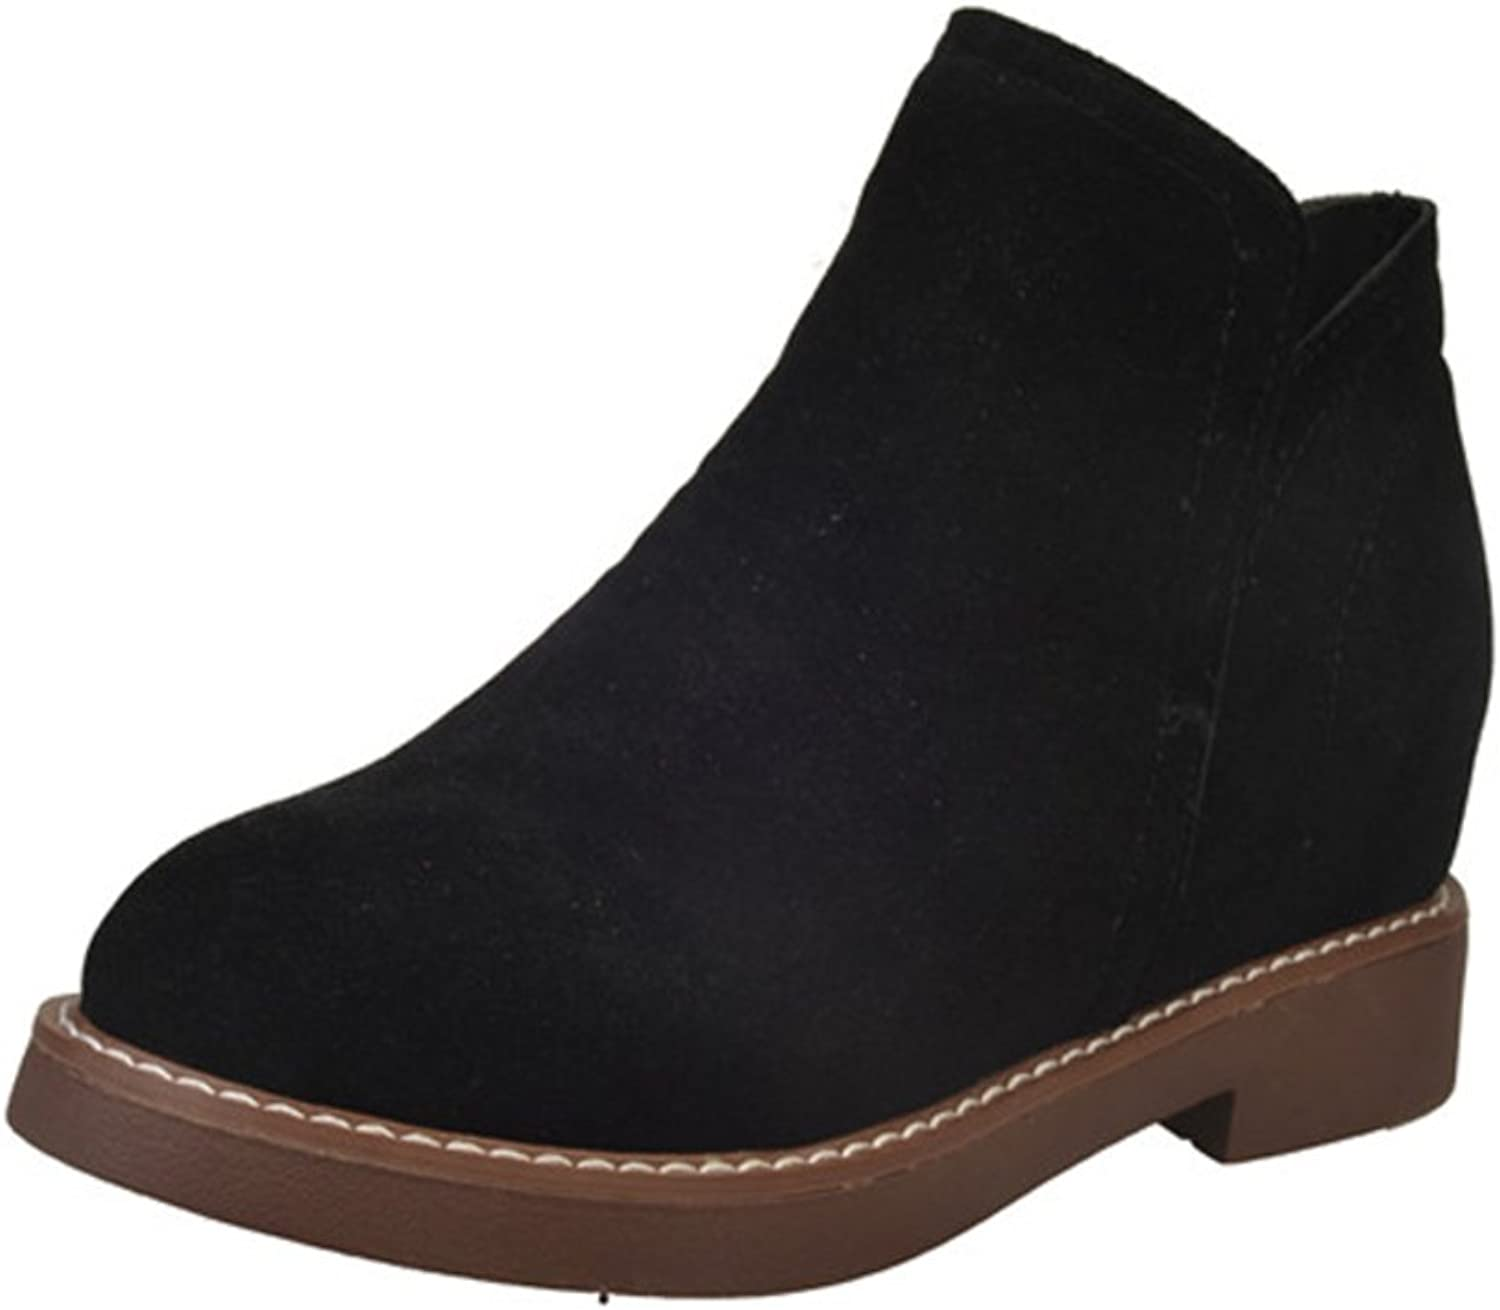 Autumn Martin boots retro rough wind with the boot of England Autumn and winter fashion ankle boots